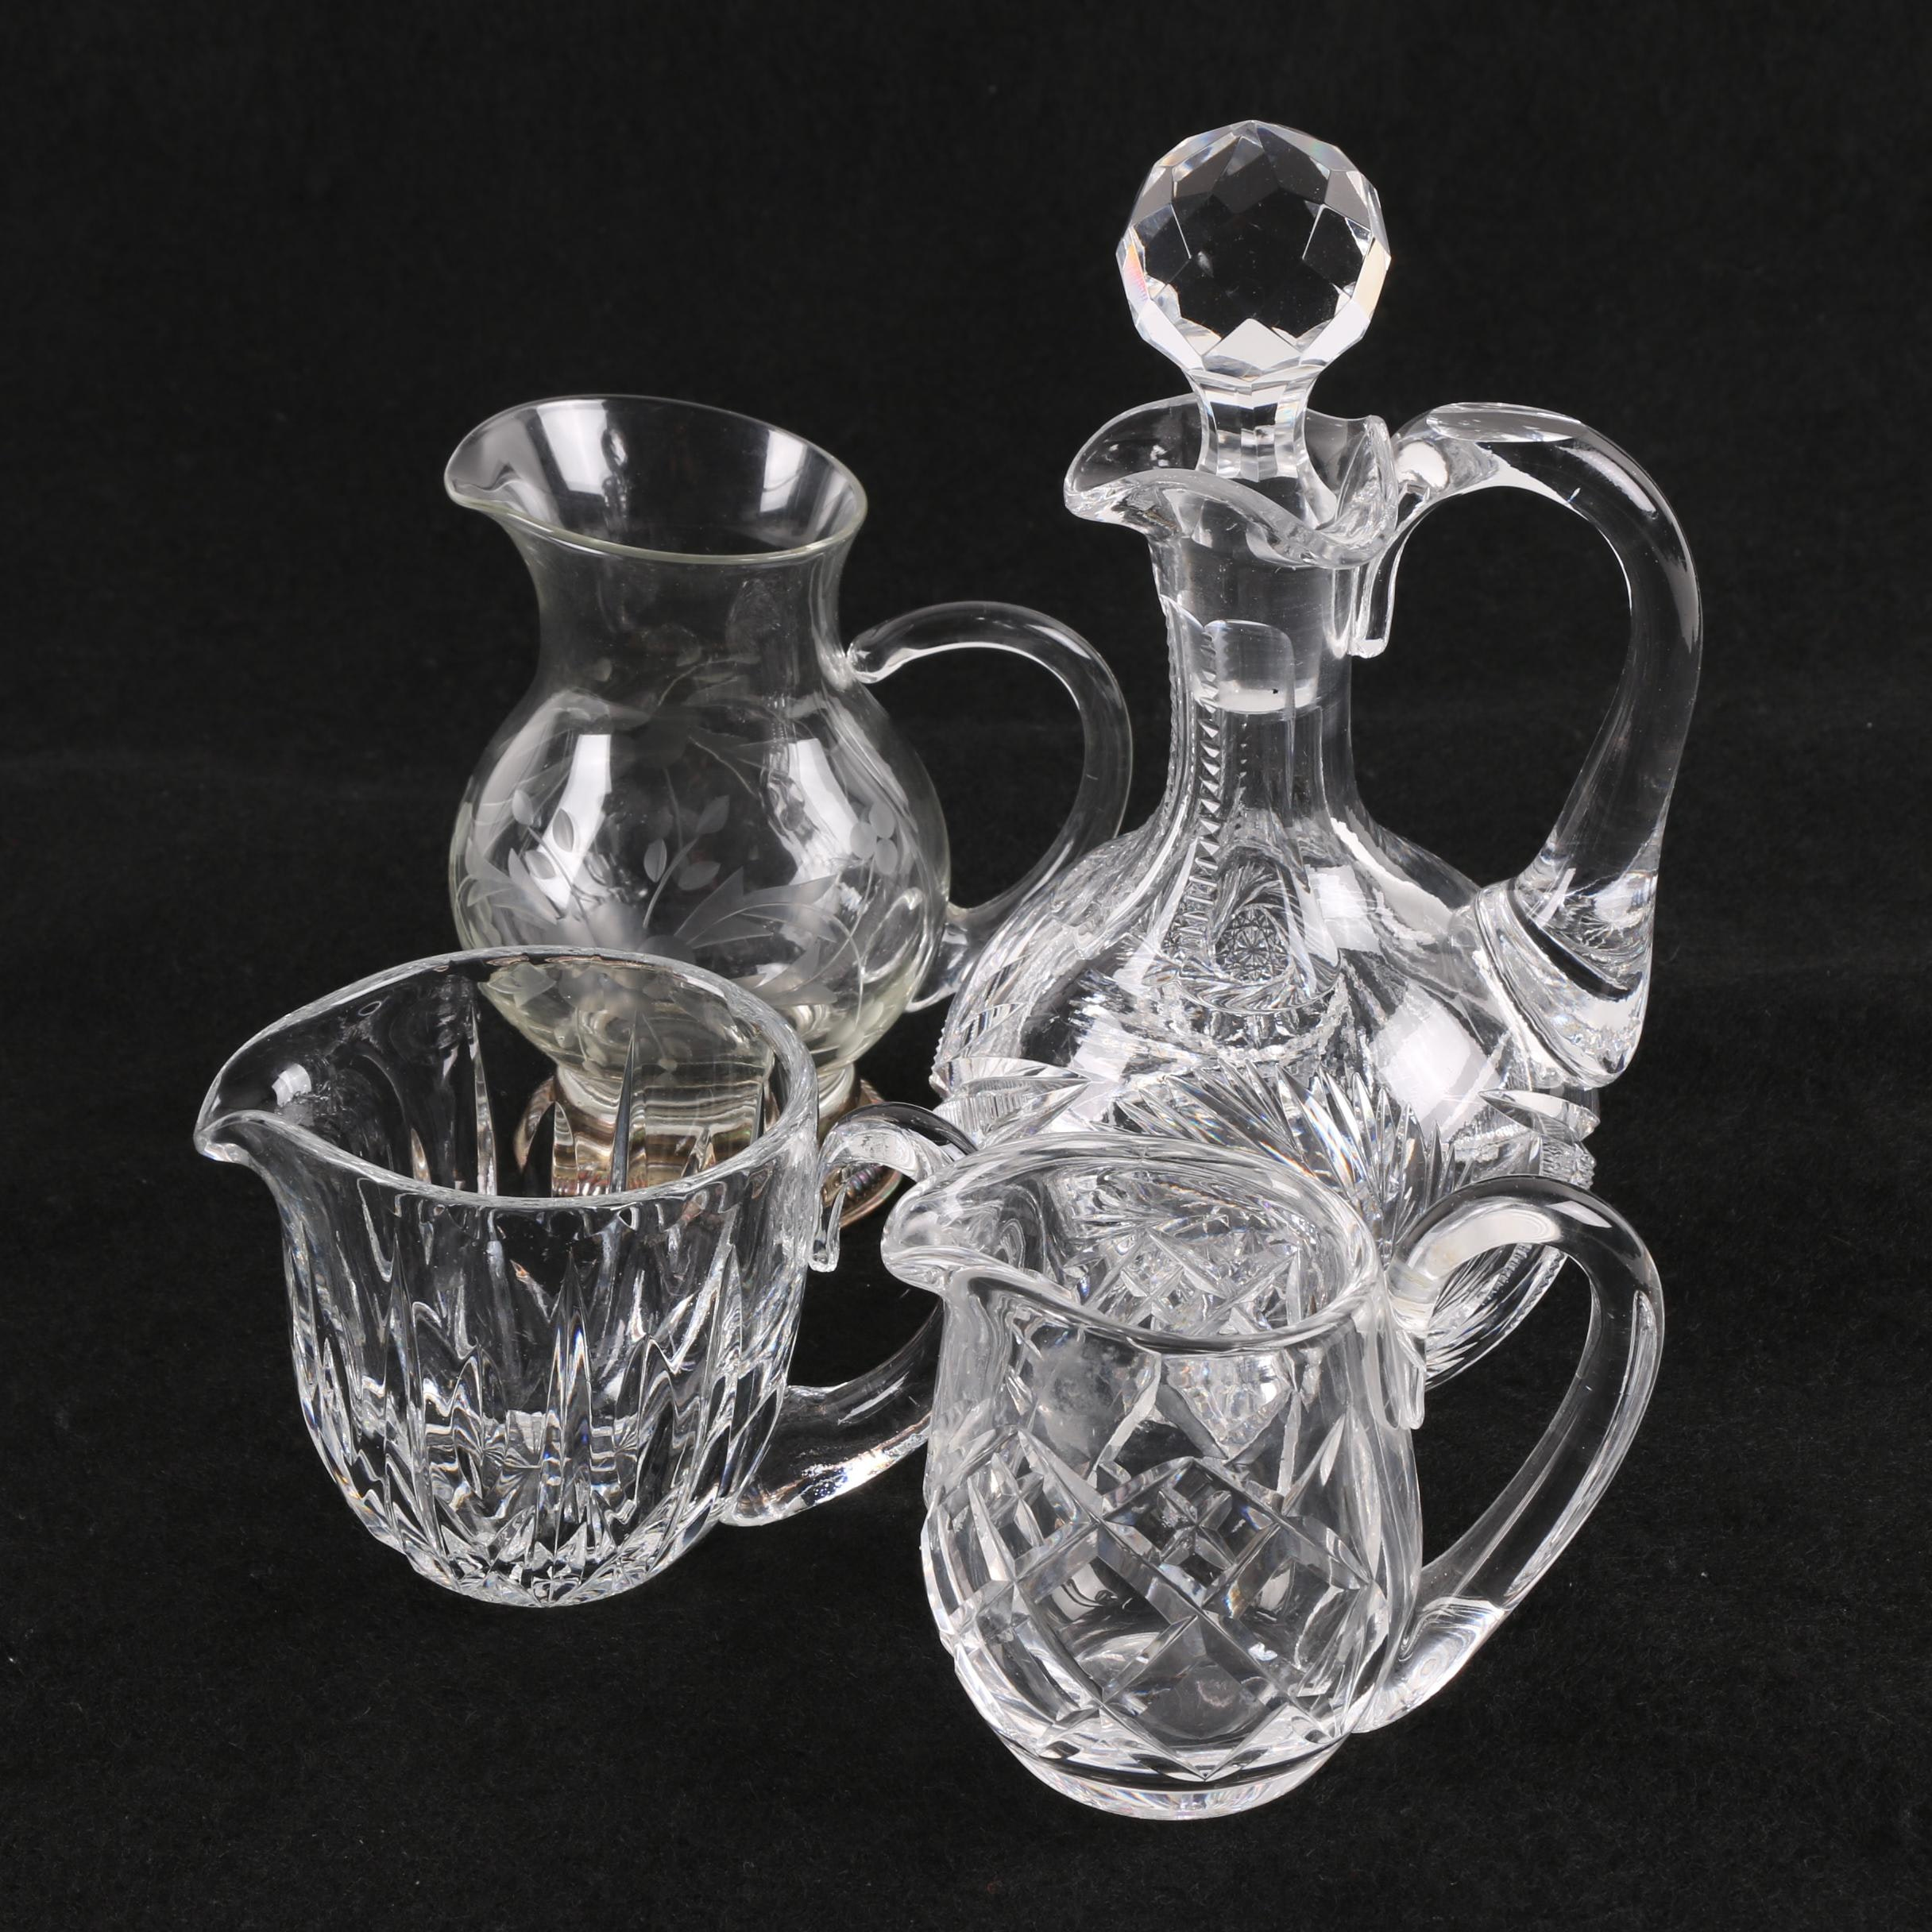 Waterford Crystal and Glass Creamers and American Brilliant Cut Cruet